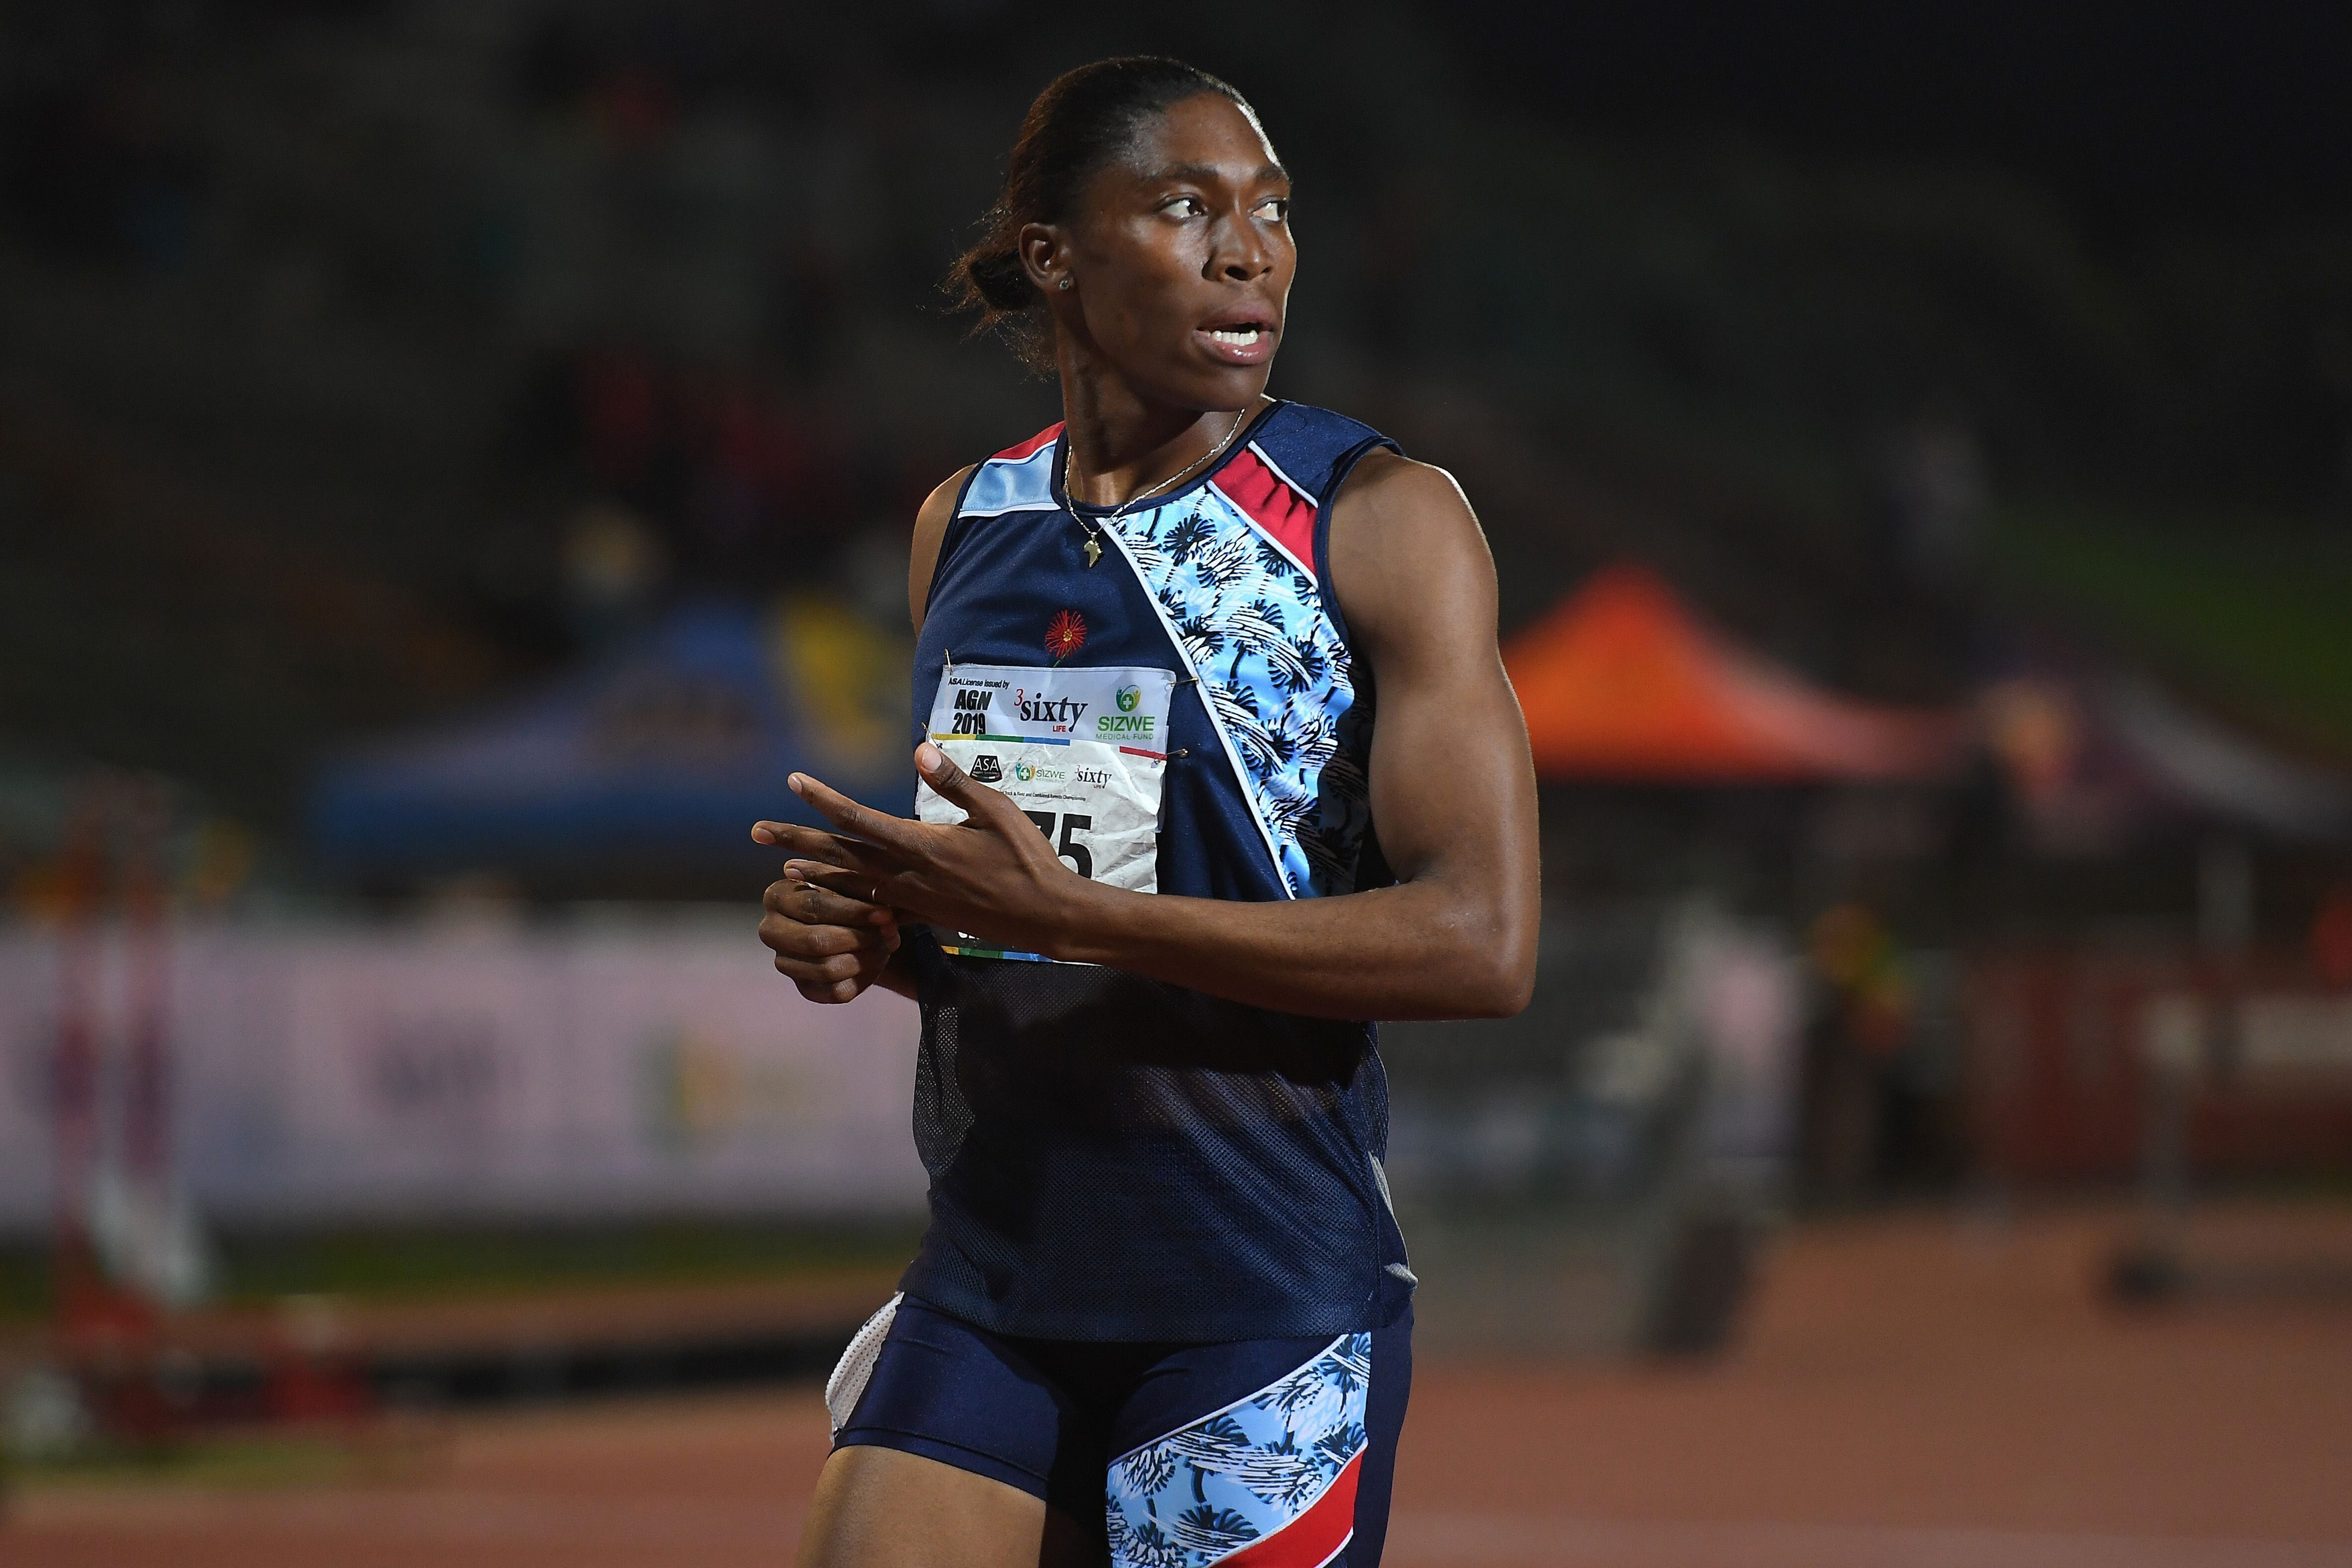 South African Olympic 800m champion Caster Semenya looks on after running the 1.500m senior women final at the ASA Senior Championships at Germiston Athletics stadium, in Germiston on the outskirts of Johannesburg, South Africa on April 26, 2019. (Photo by STRINGER / AFP)        (Photo credit should read STRINGER/AFP/Getty Images)